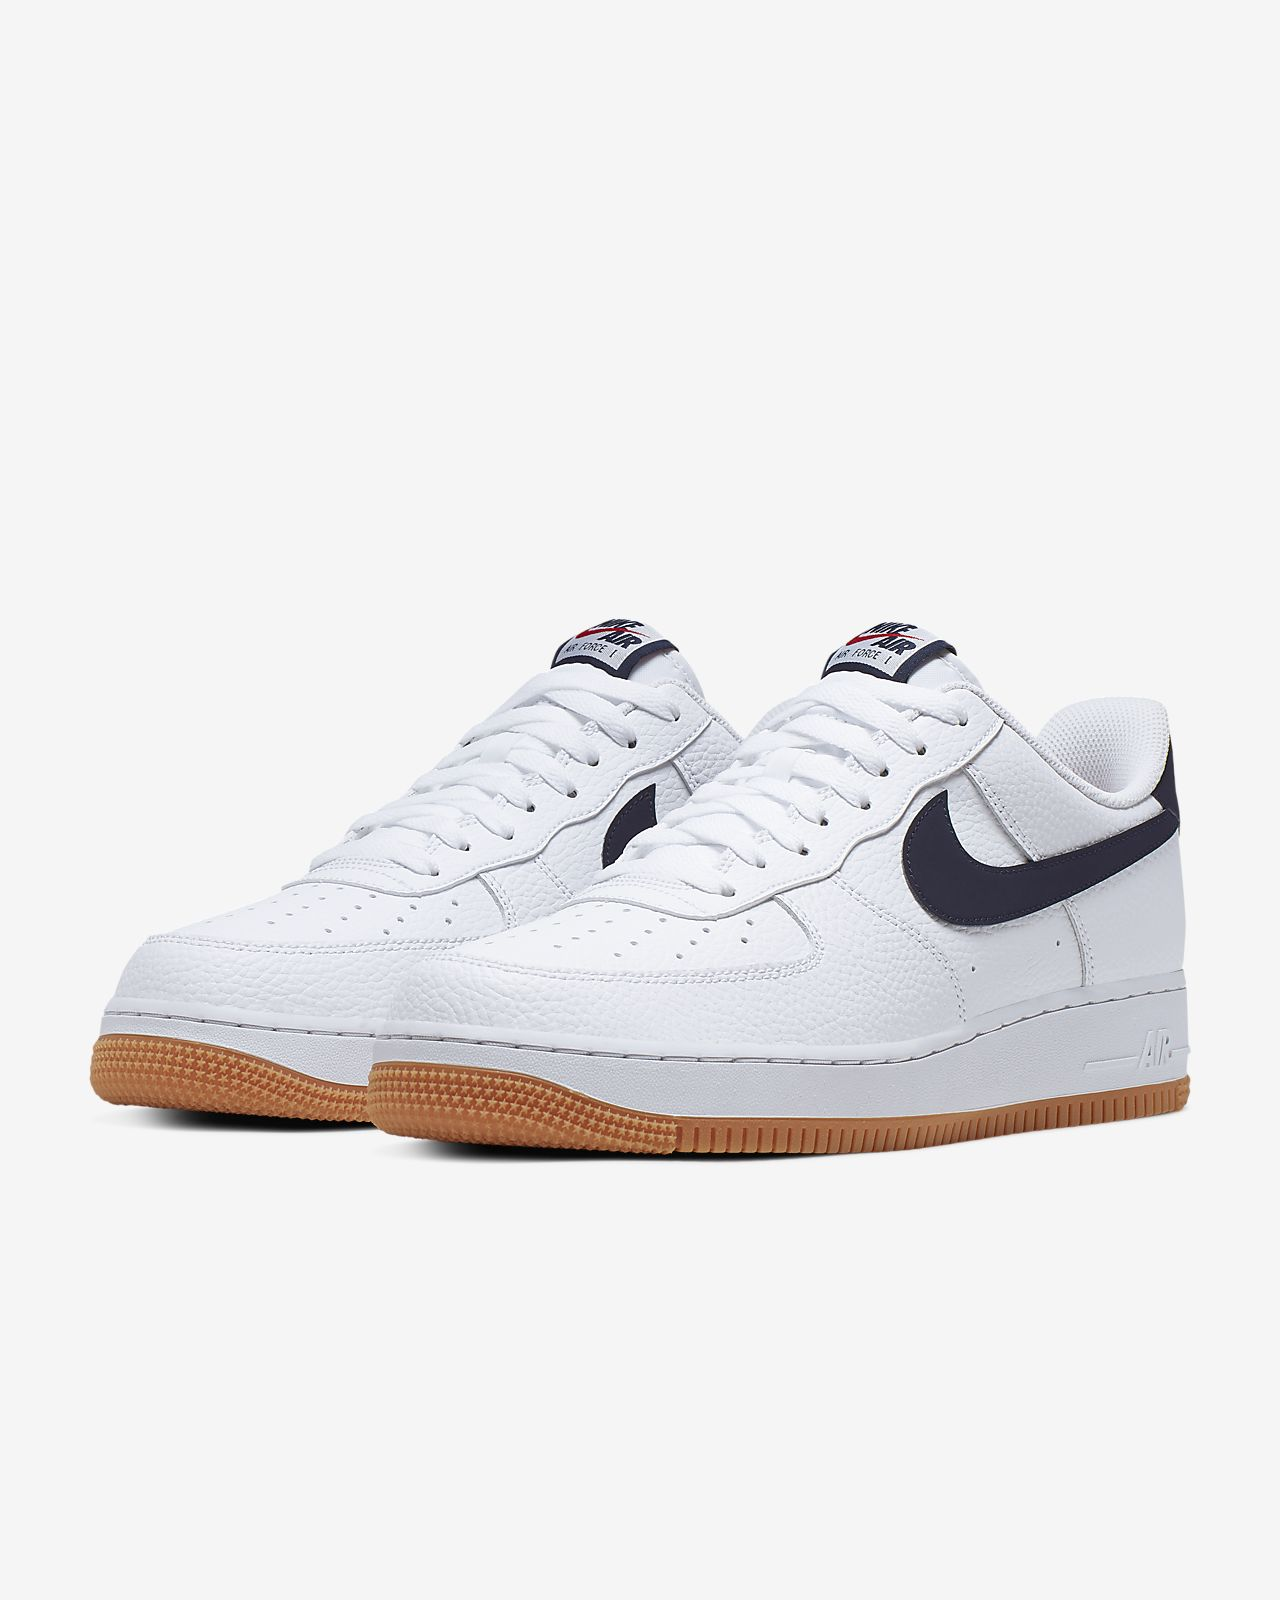 pas cher pour réduction 105af 680be Nike Air Force 1 Men's Shoe